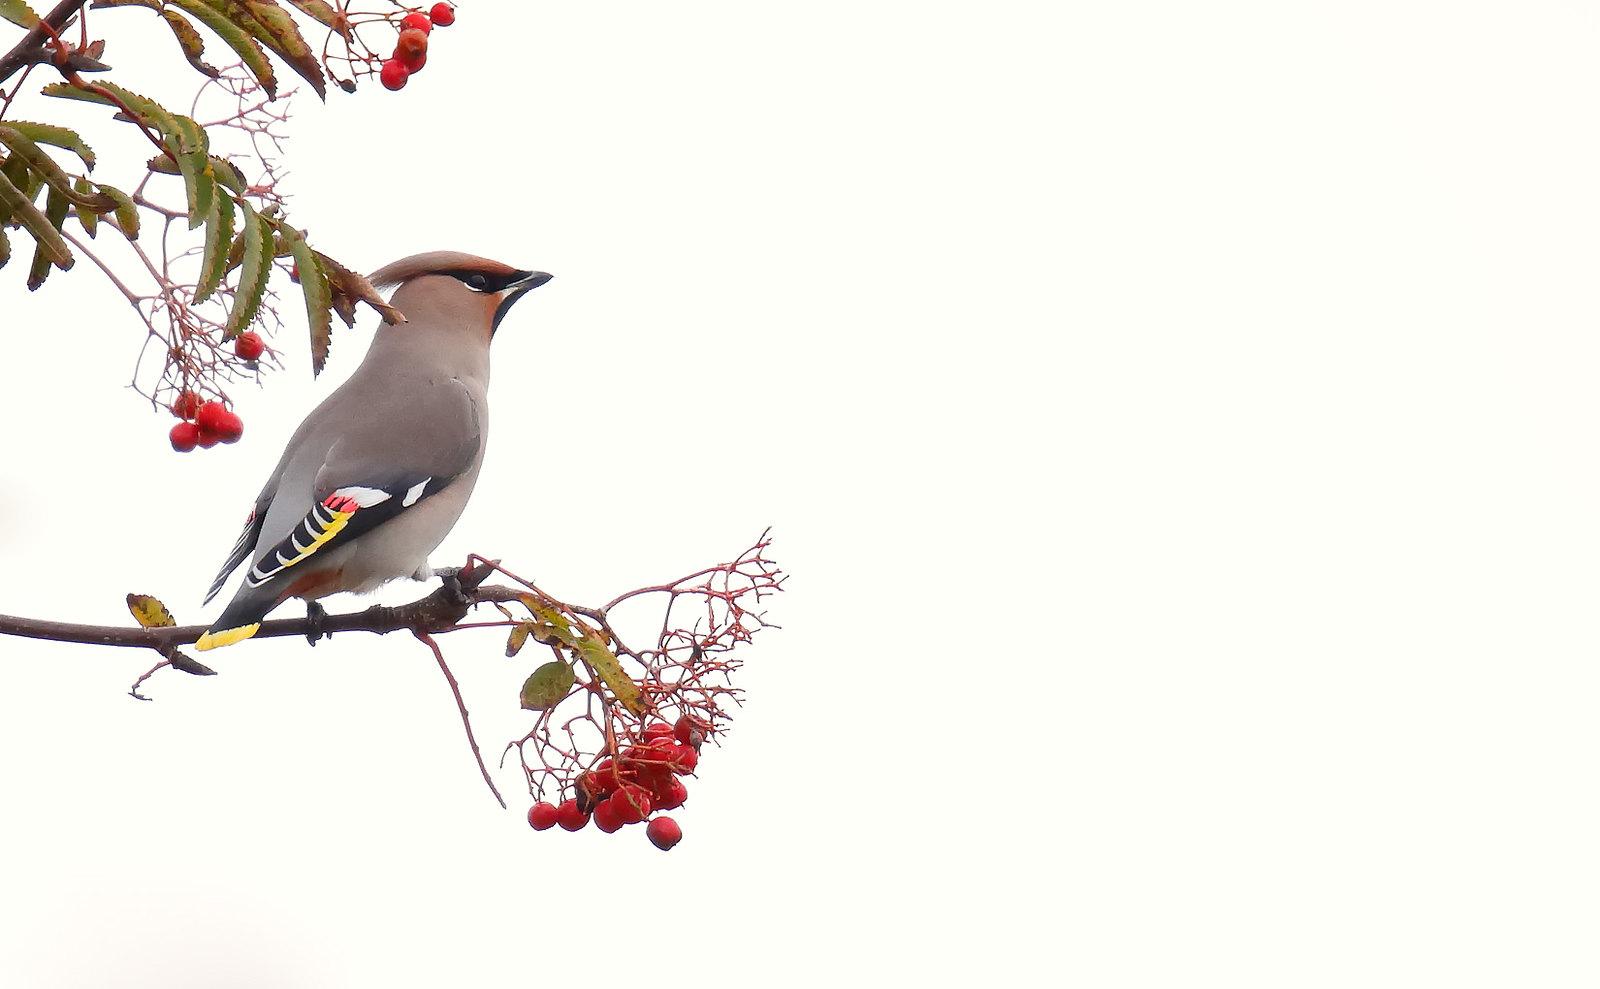 Waxwing - adult male